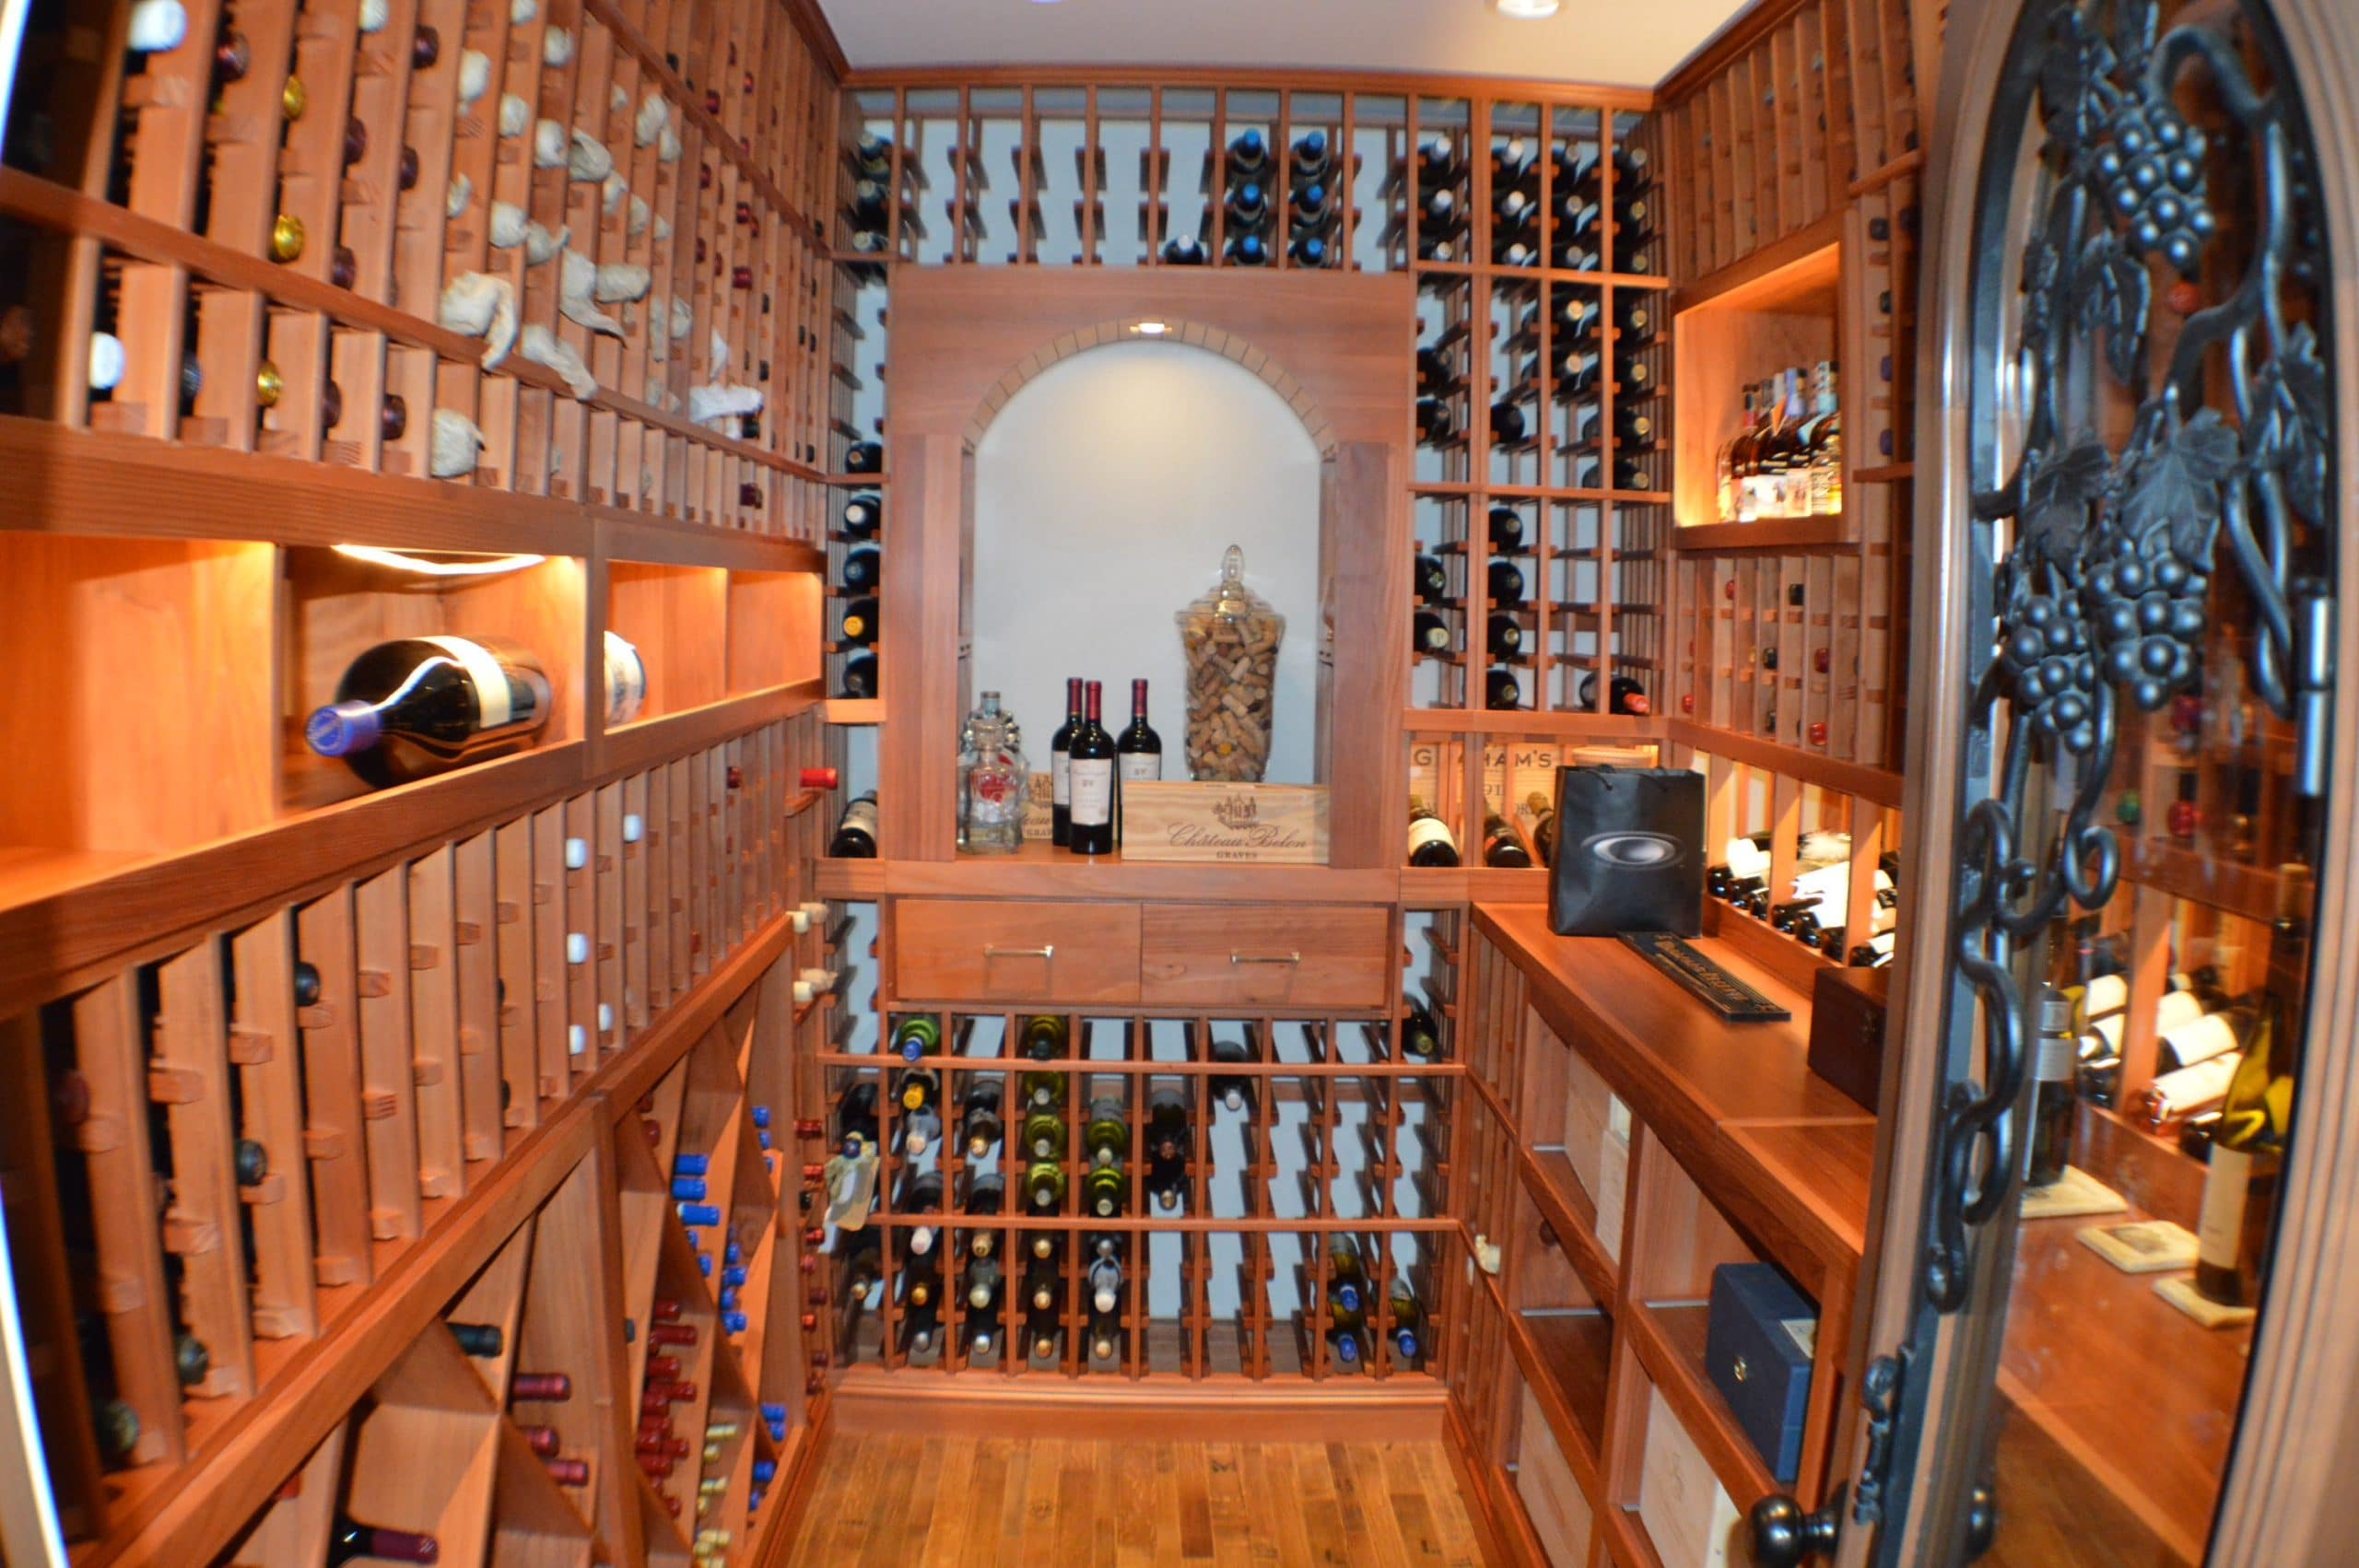 San francisco home custom wine cellar with redwood racking for In home wine cellar